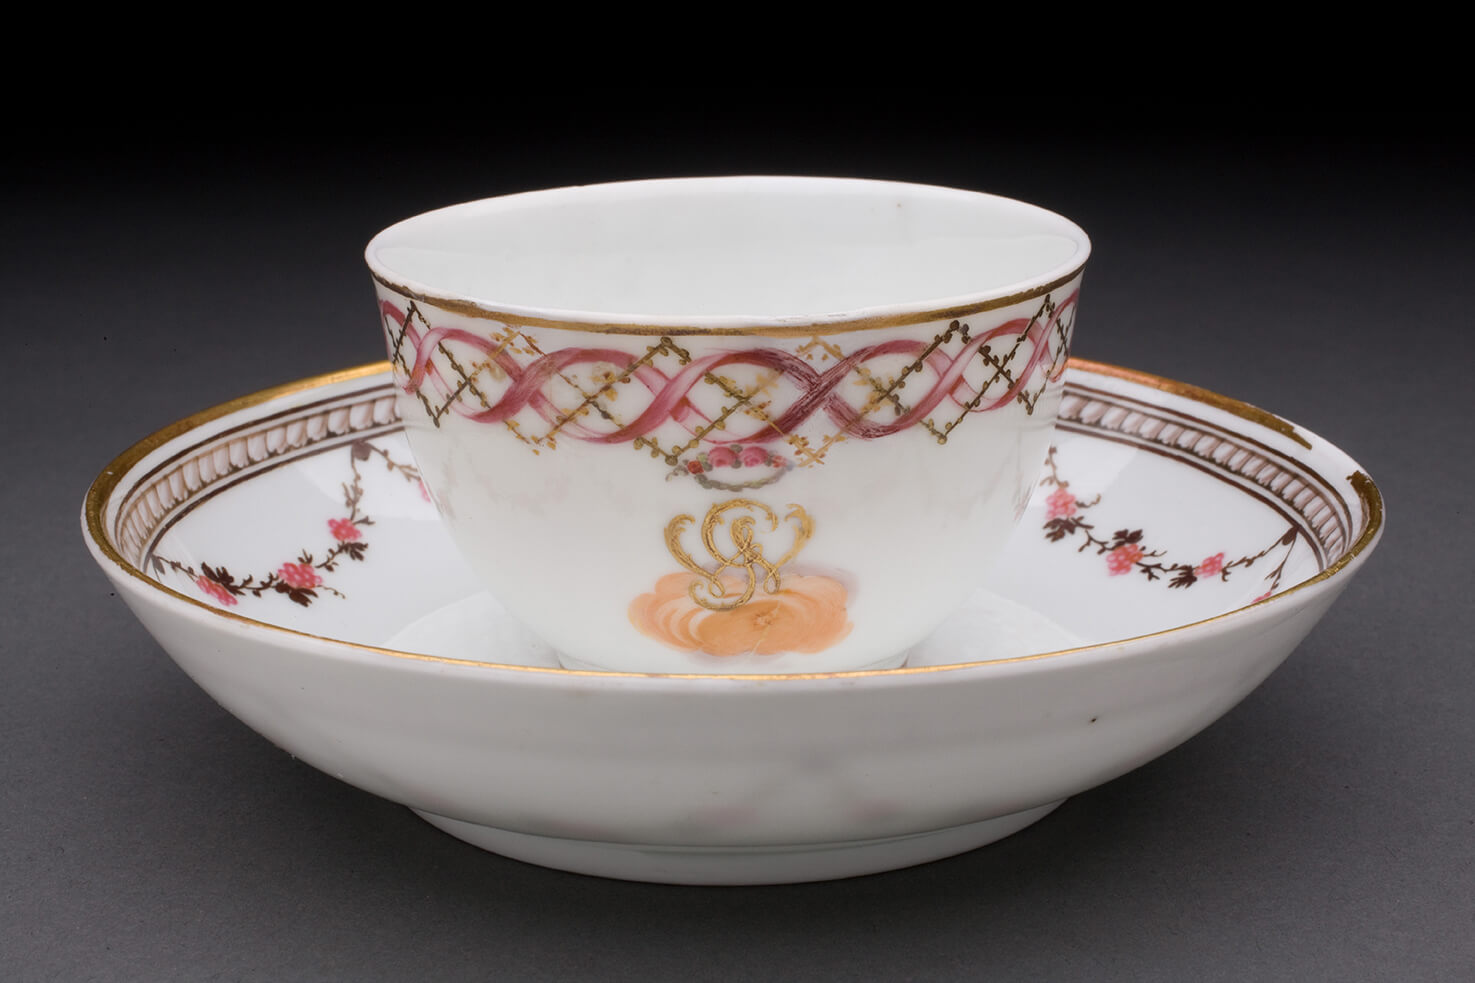 George Washington Teacup and Saucer